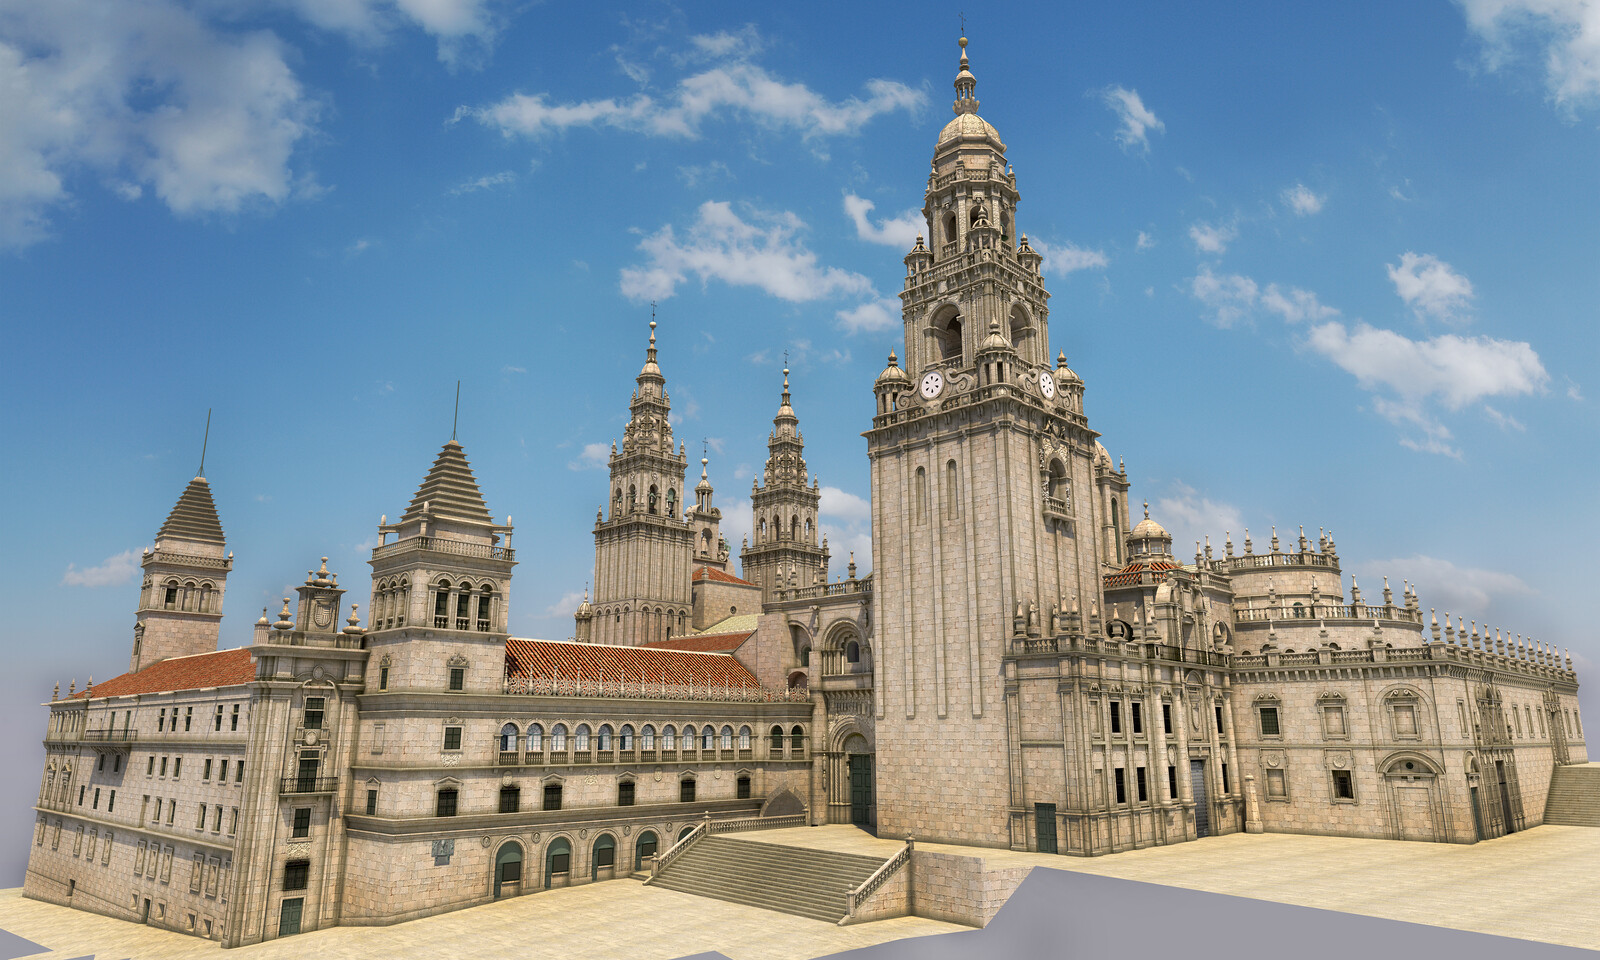 3D illustration. Exterior. Rear view of the cathedral complex with the Treasury Facade of the cloister on the left, the Platerías Facade and the Berenguela tower in the middle and the main apse and the Saint Door on the right.